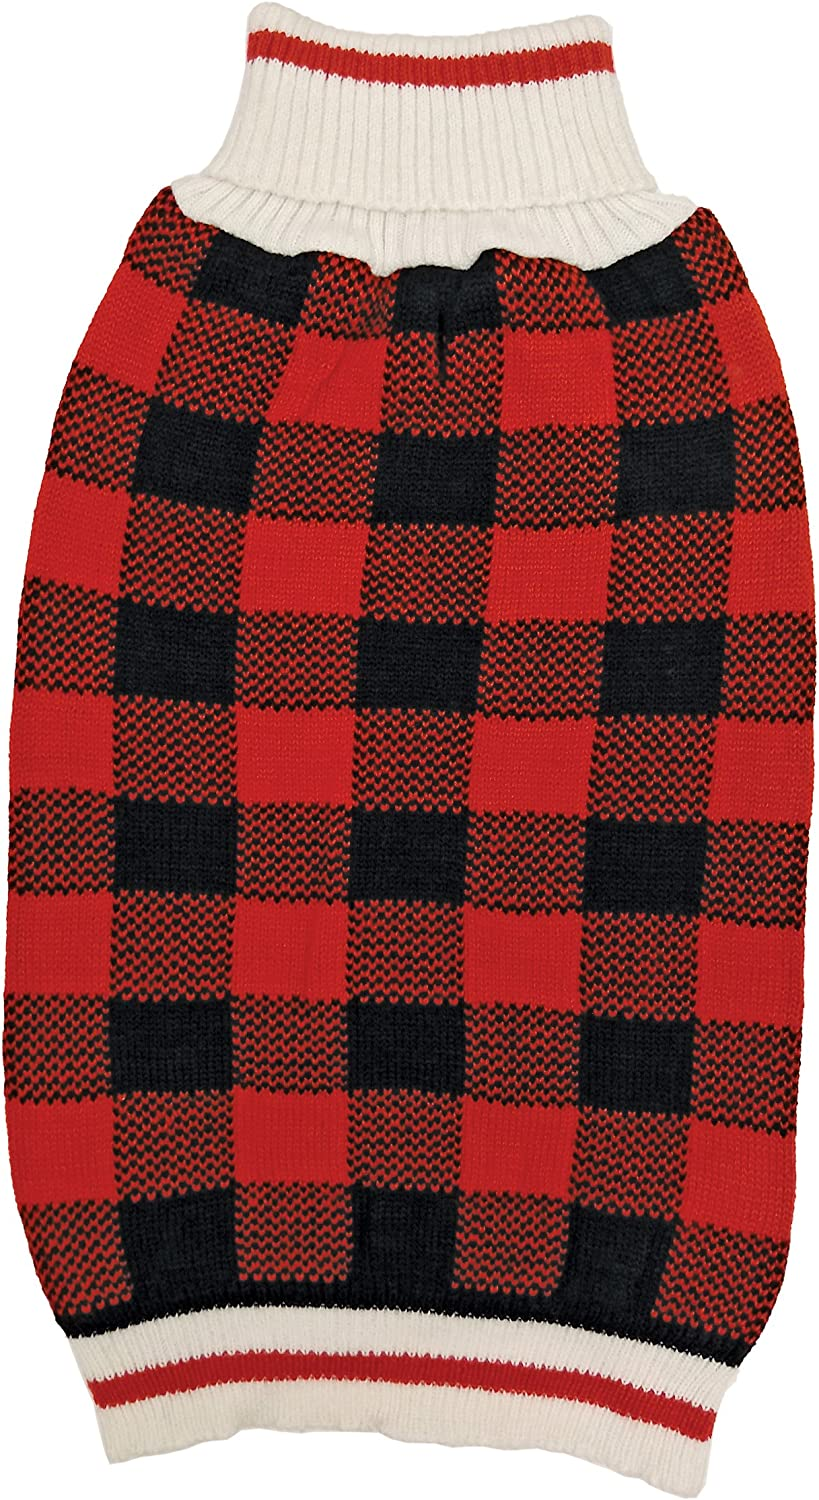 Fashion Pet 652626 Plaid Sweater, Large, Red